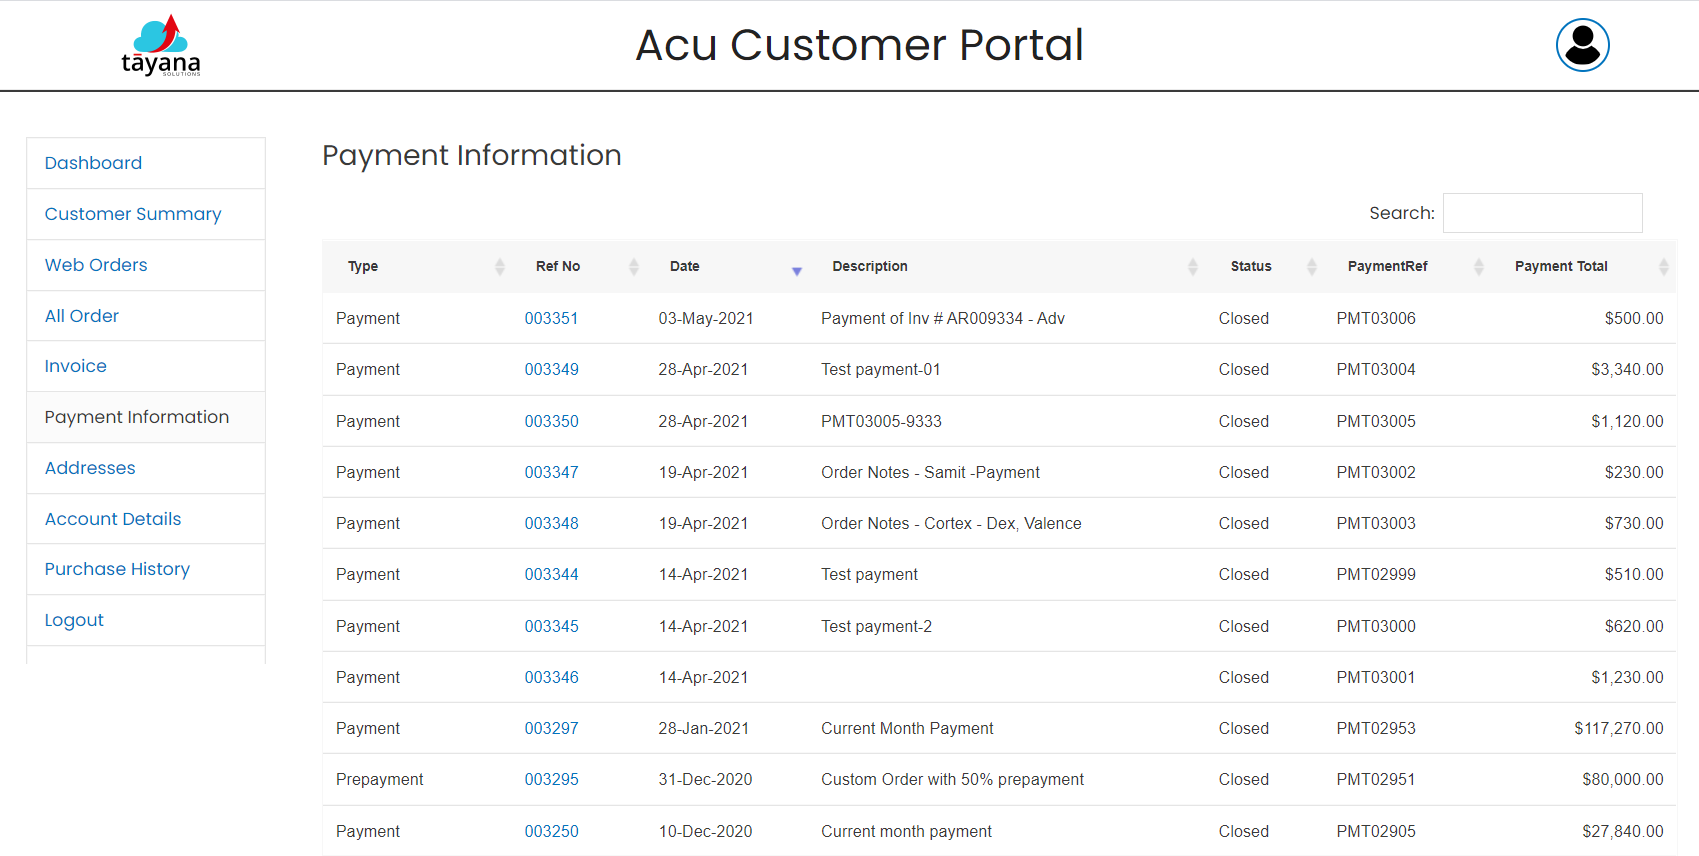 AcuCustomerPortal-Payments